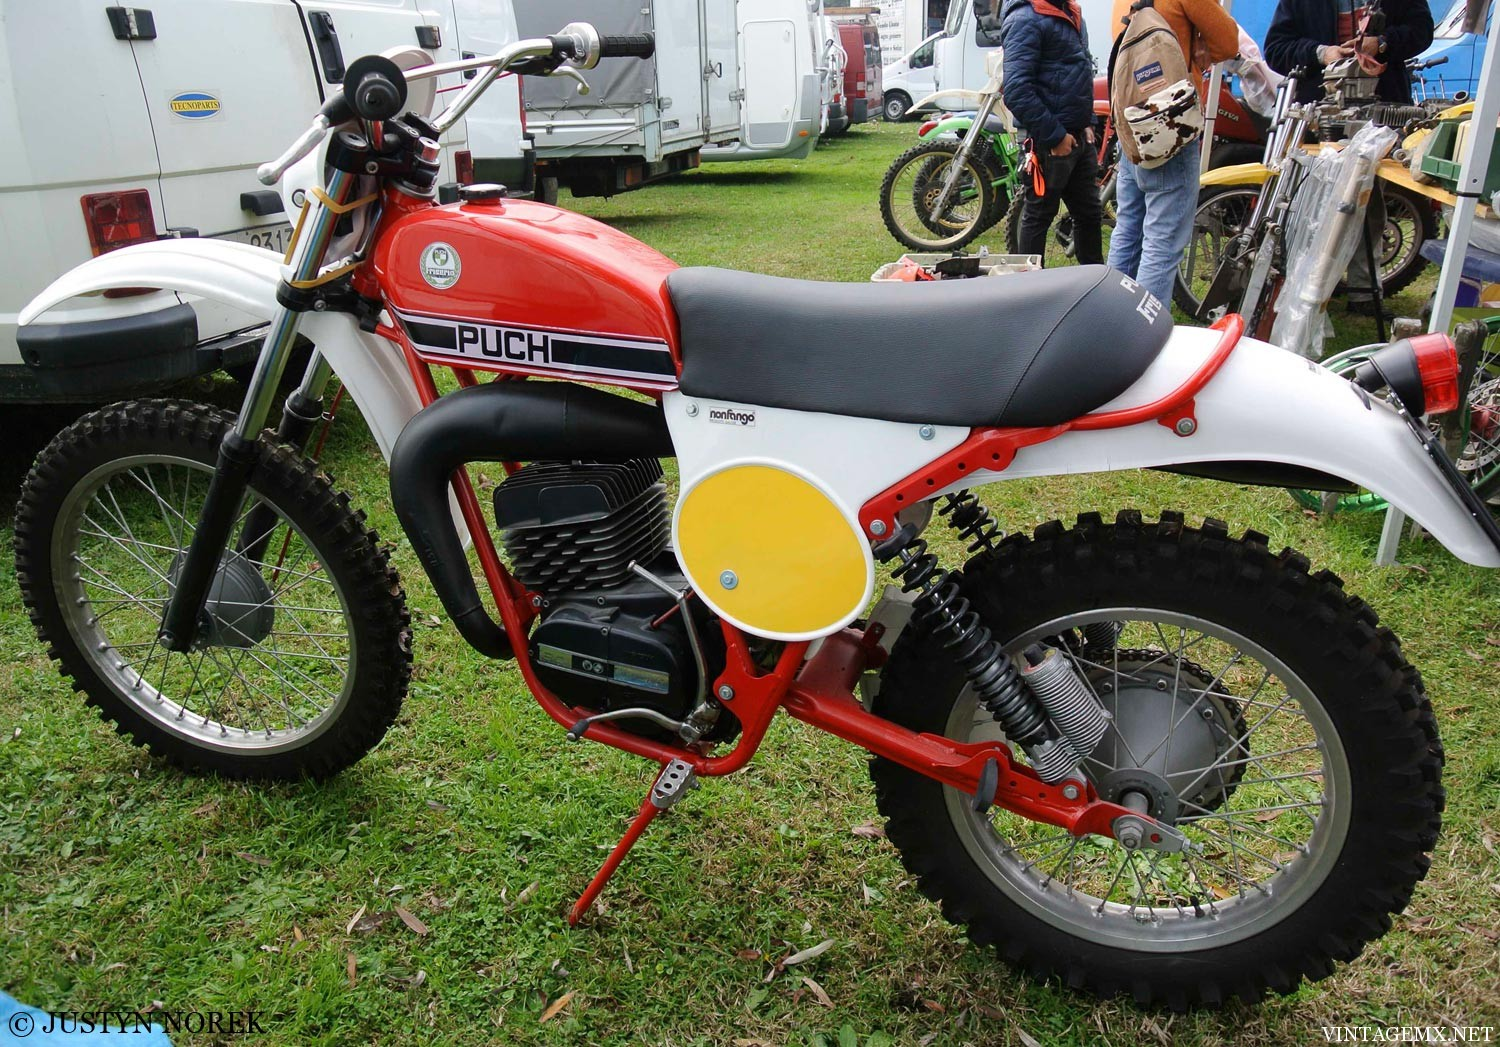 Puch 125 GS images #121447